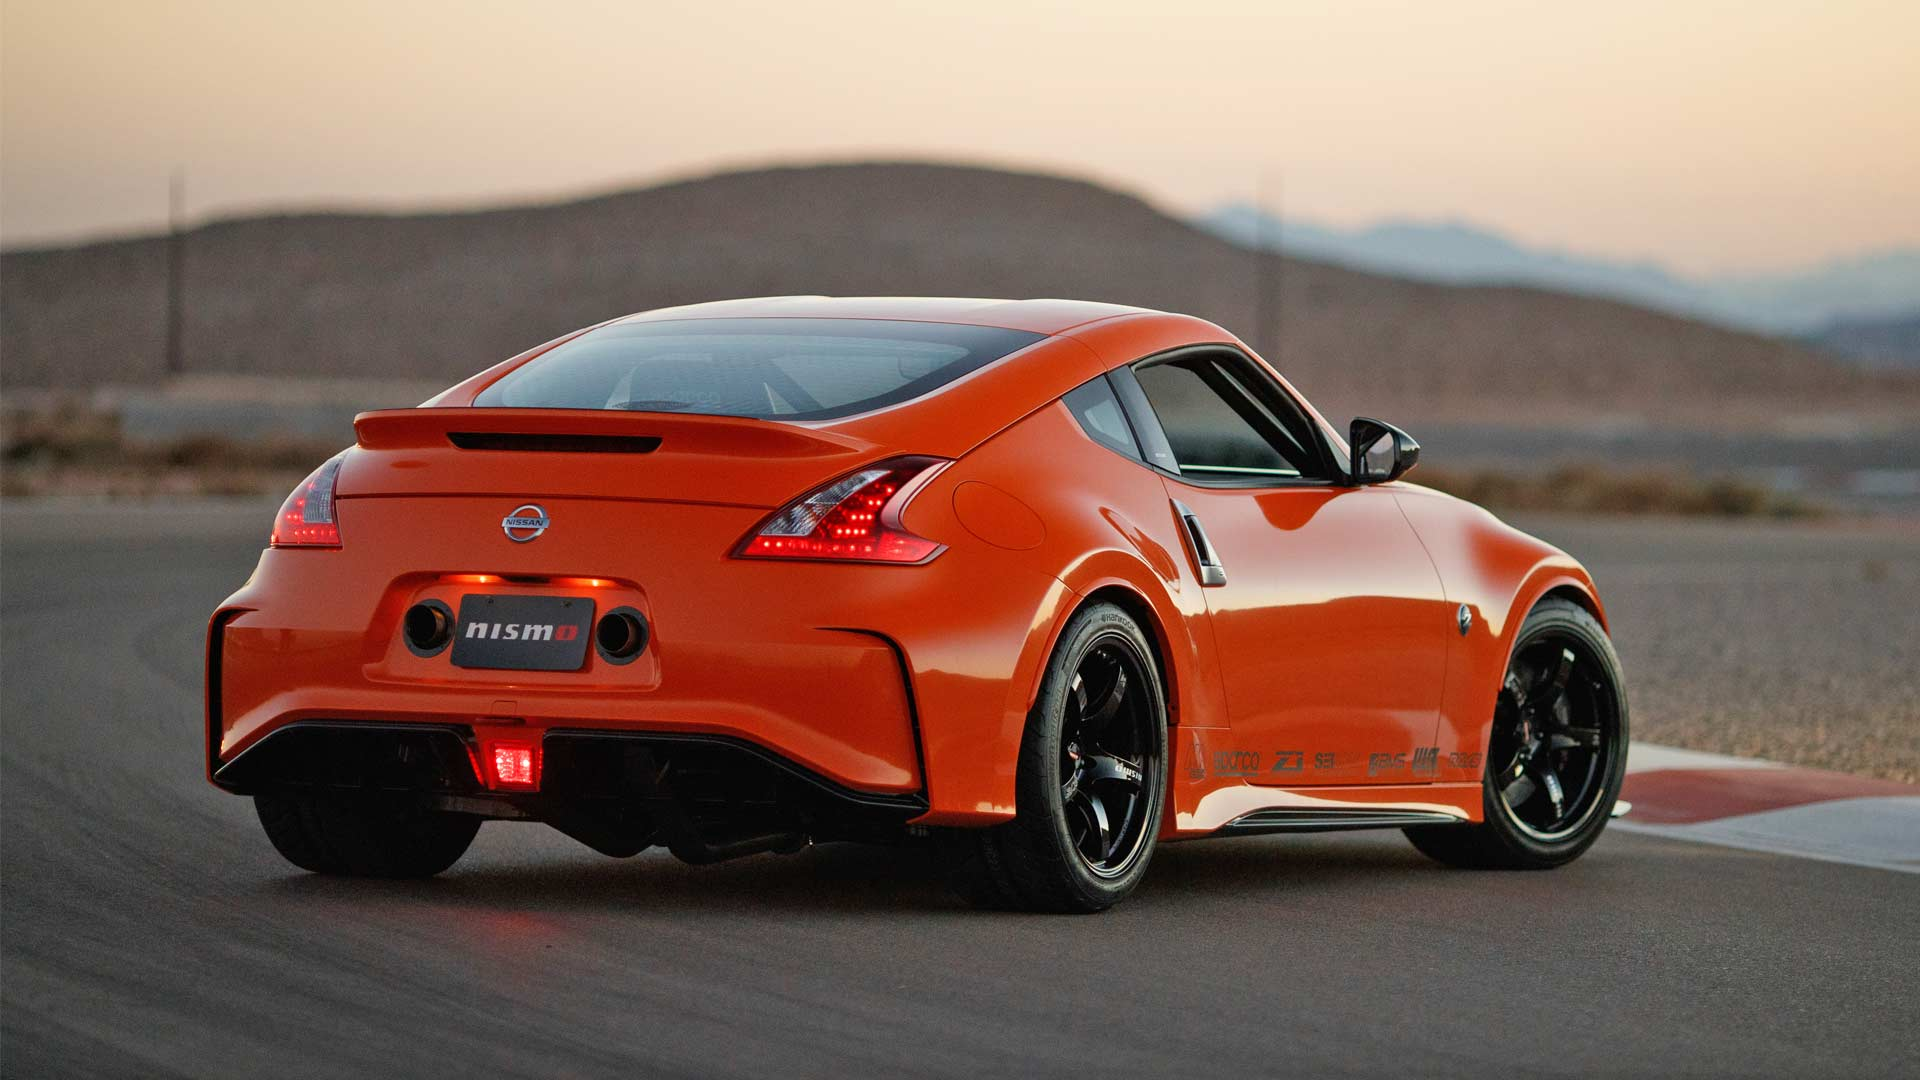 Nissan-370Z-Project-Clubsport-23_2